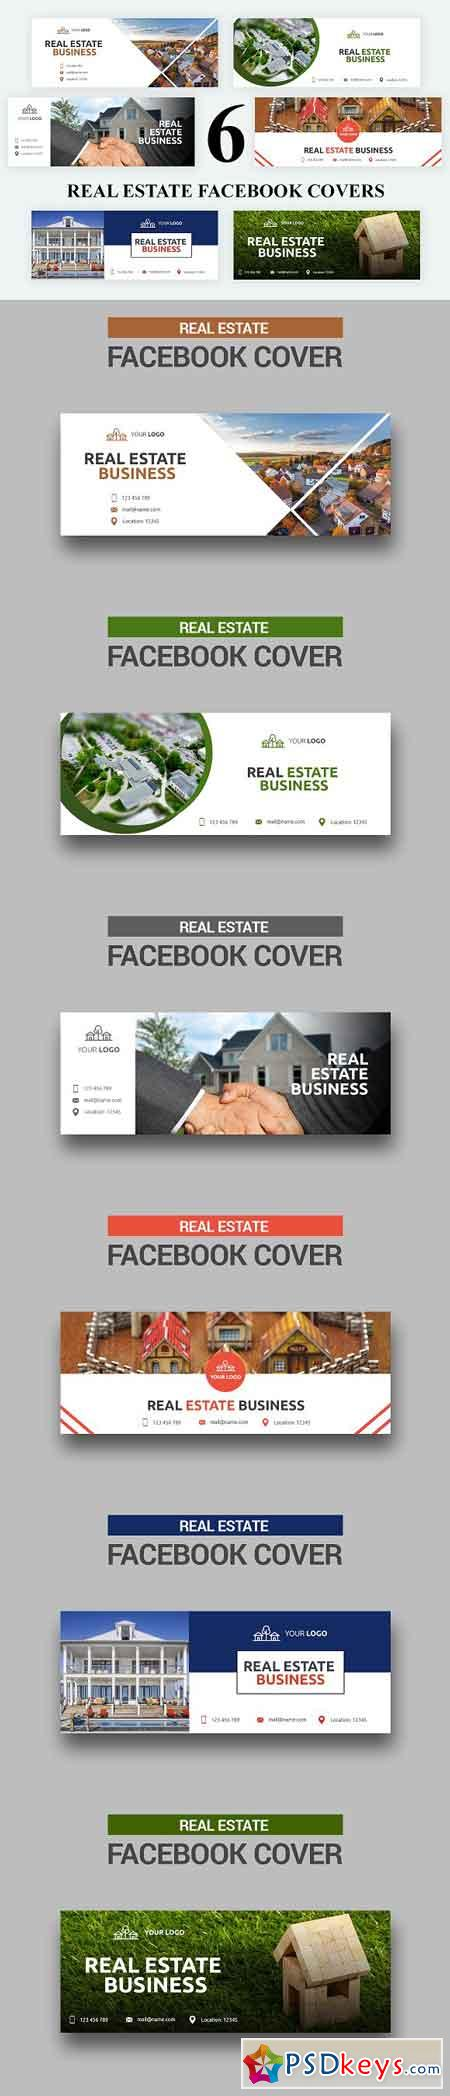 Real Estate Facebook Covers - SK 3032786